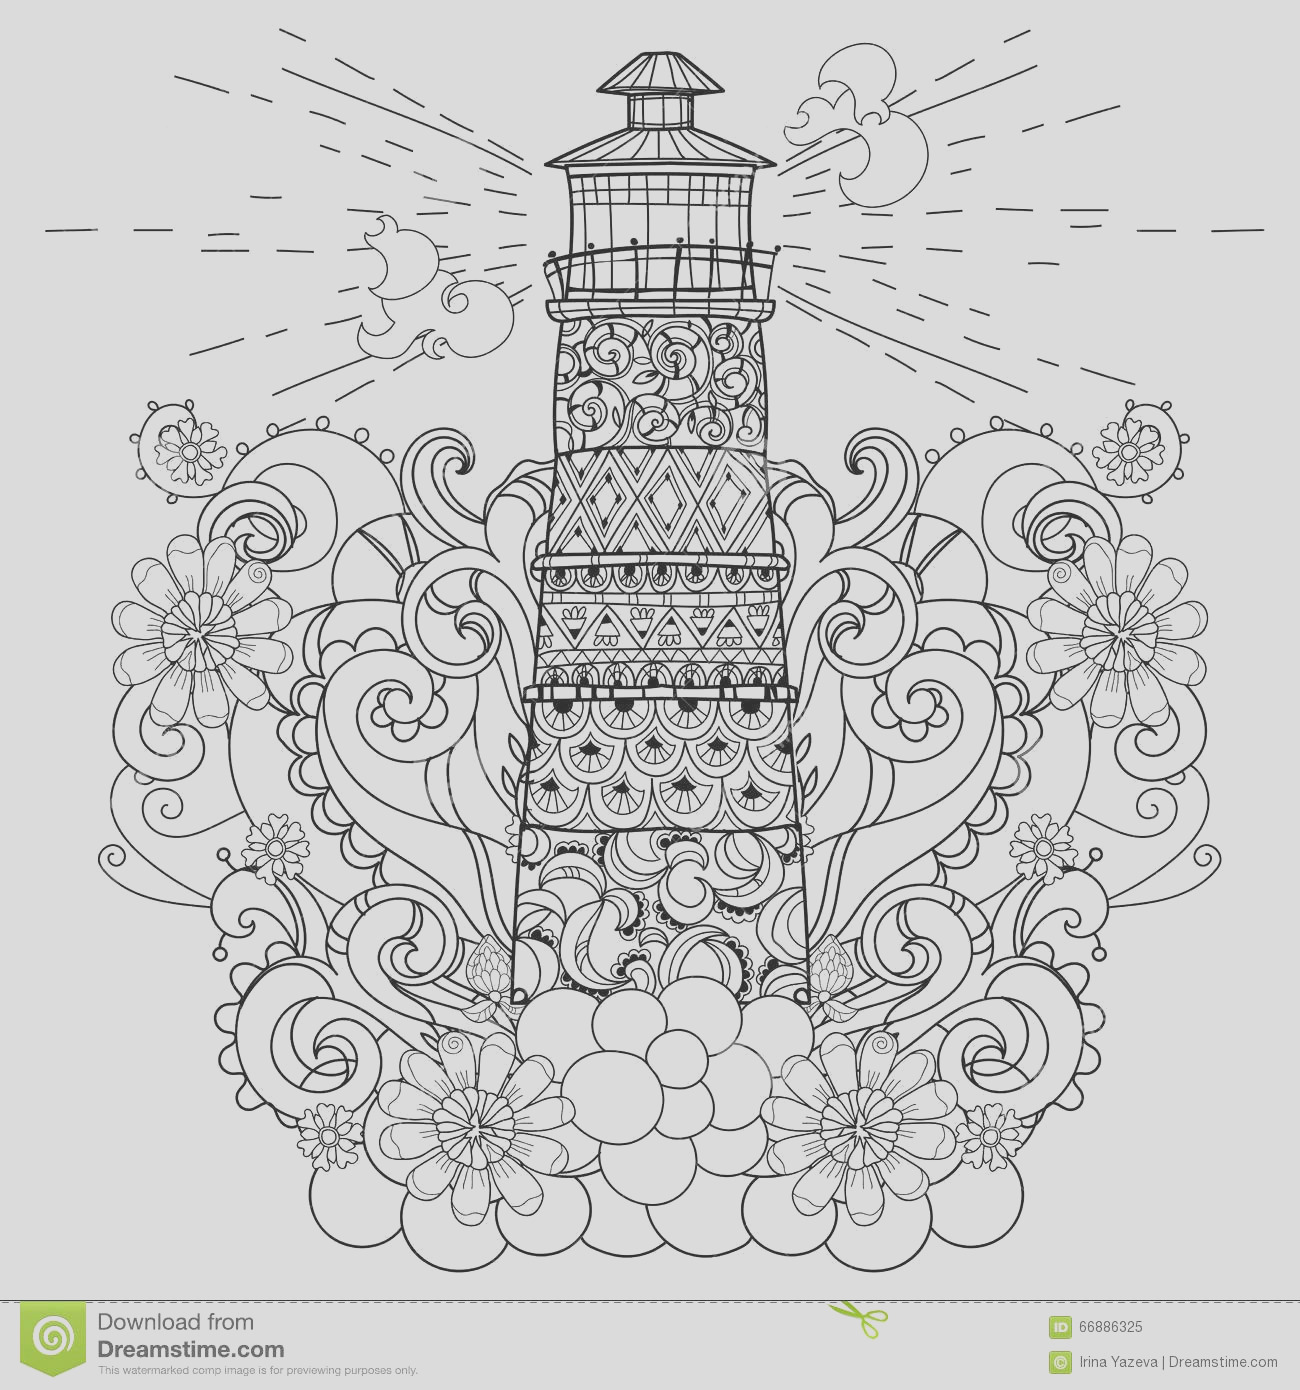 stock illustration hand drawn doodle outline lighthouse boho decorated floral ornaments vector zentangle illustration floral ornament sketch image